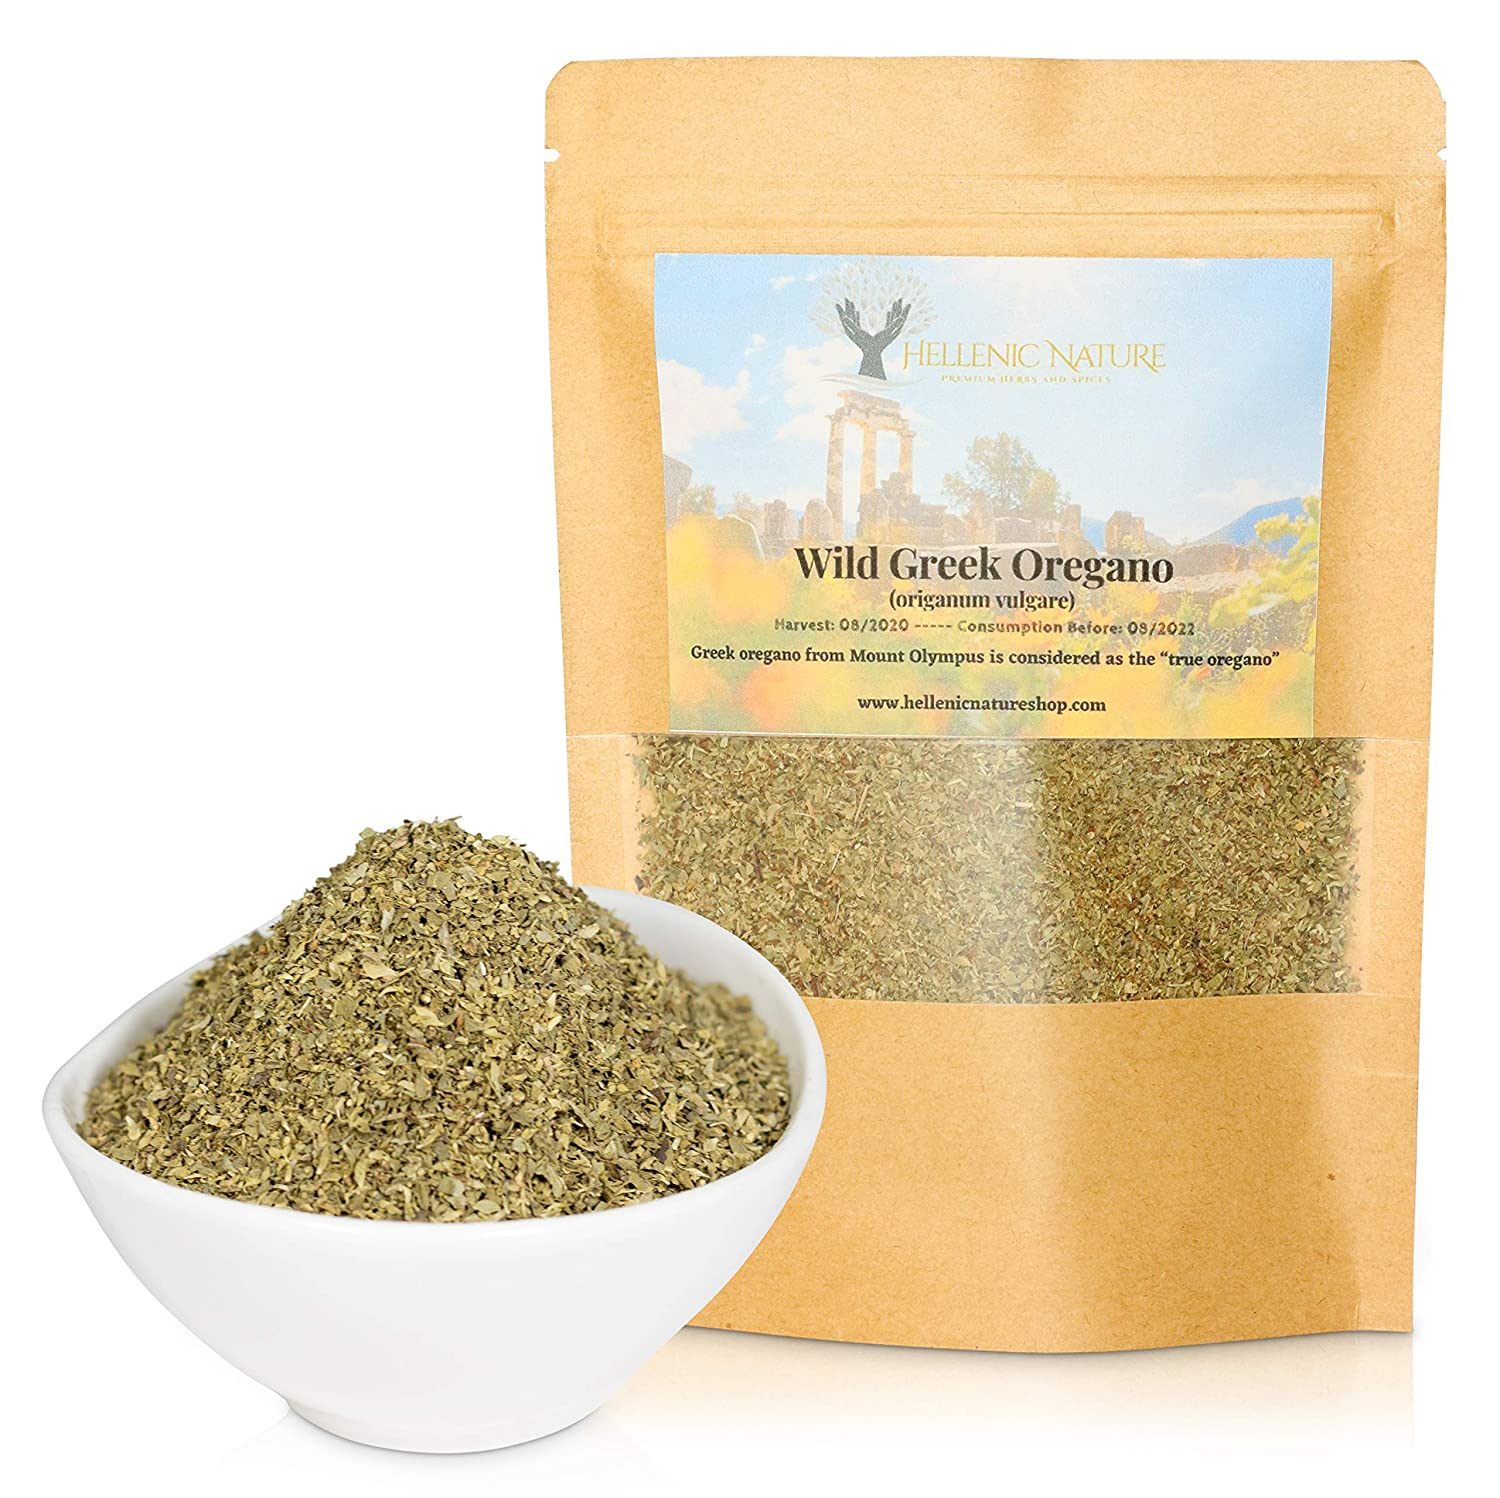 WILD GREEK OREGANO DRIED PREMIUM QUALITY- from Mount Olympus Handpicked and Air-Dried (origanum vulgare) 40g (1.41oz) in DoyPack with ZipLock for Awesome Freshness and Aroma - Mediterranean Seasoning